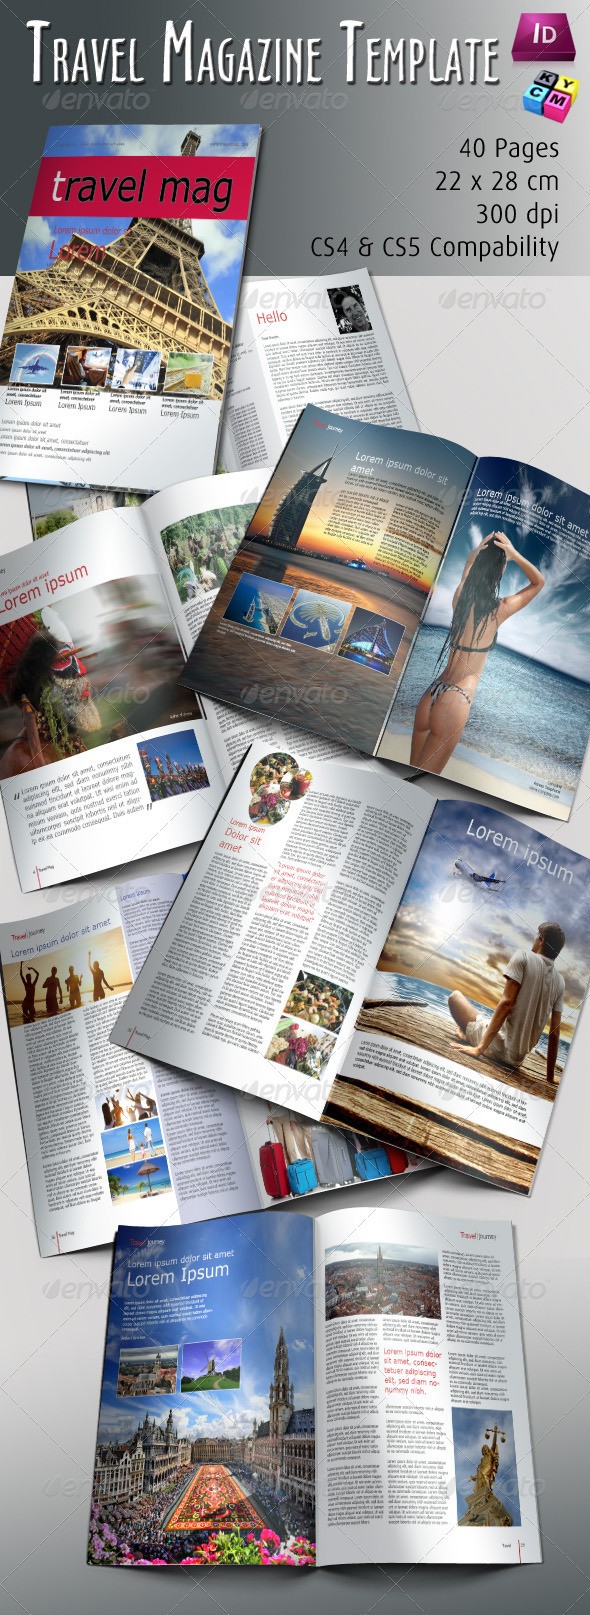 Travel Magazine Template - Magazines Print Templates